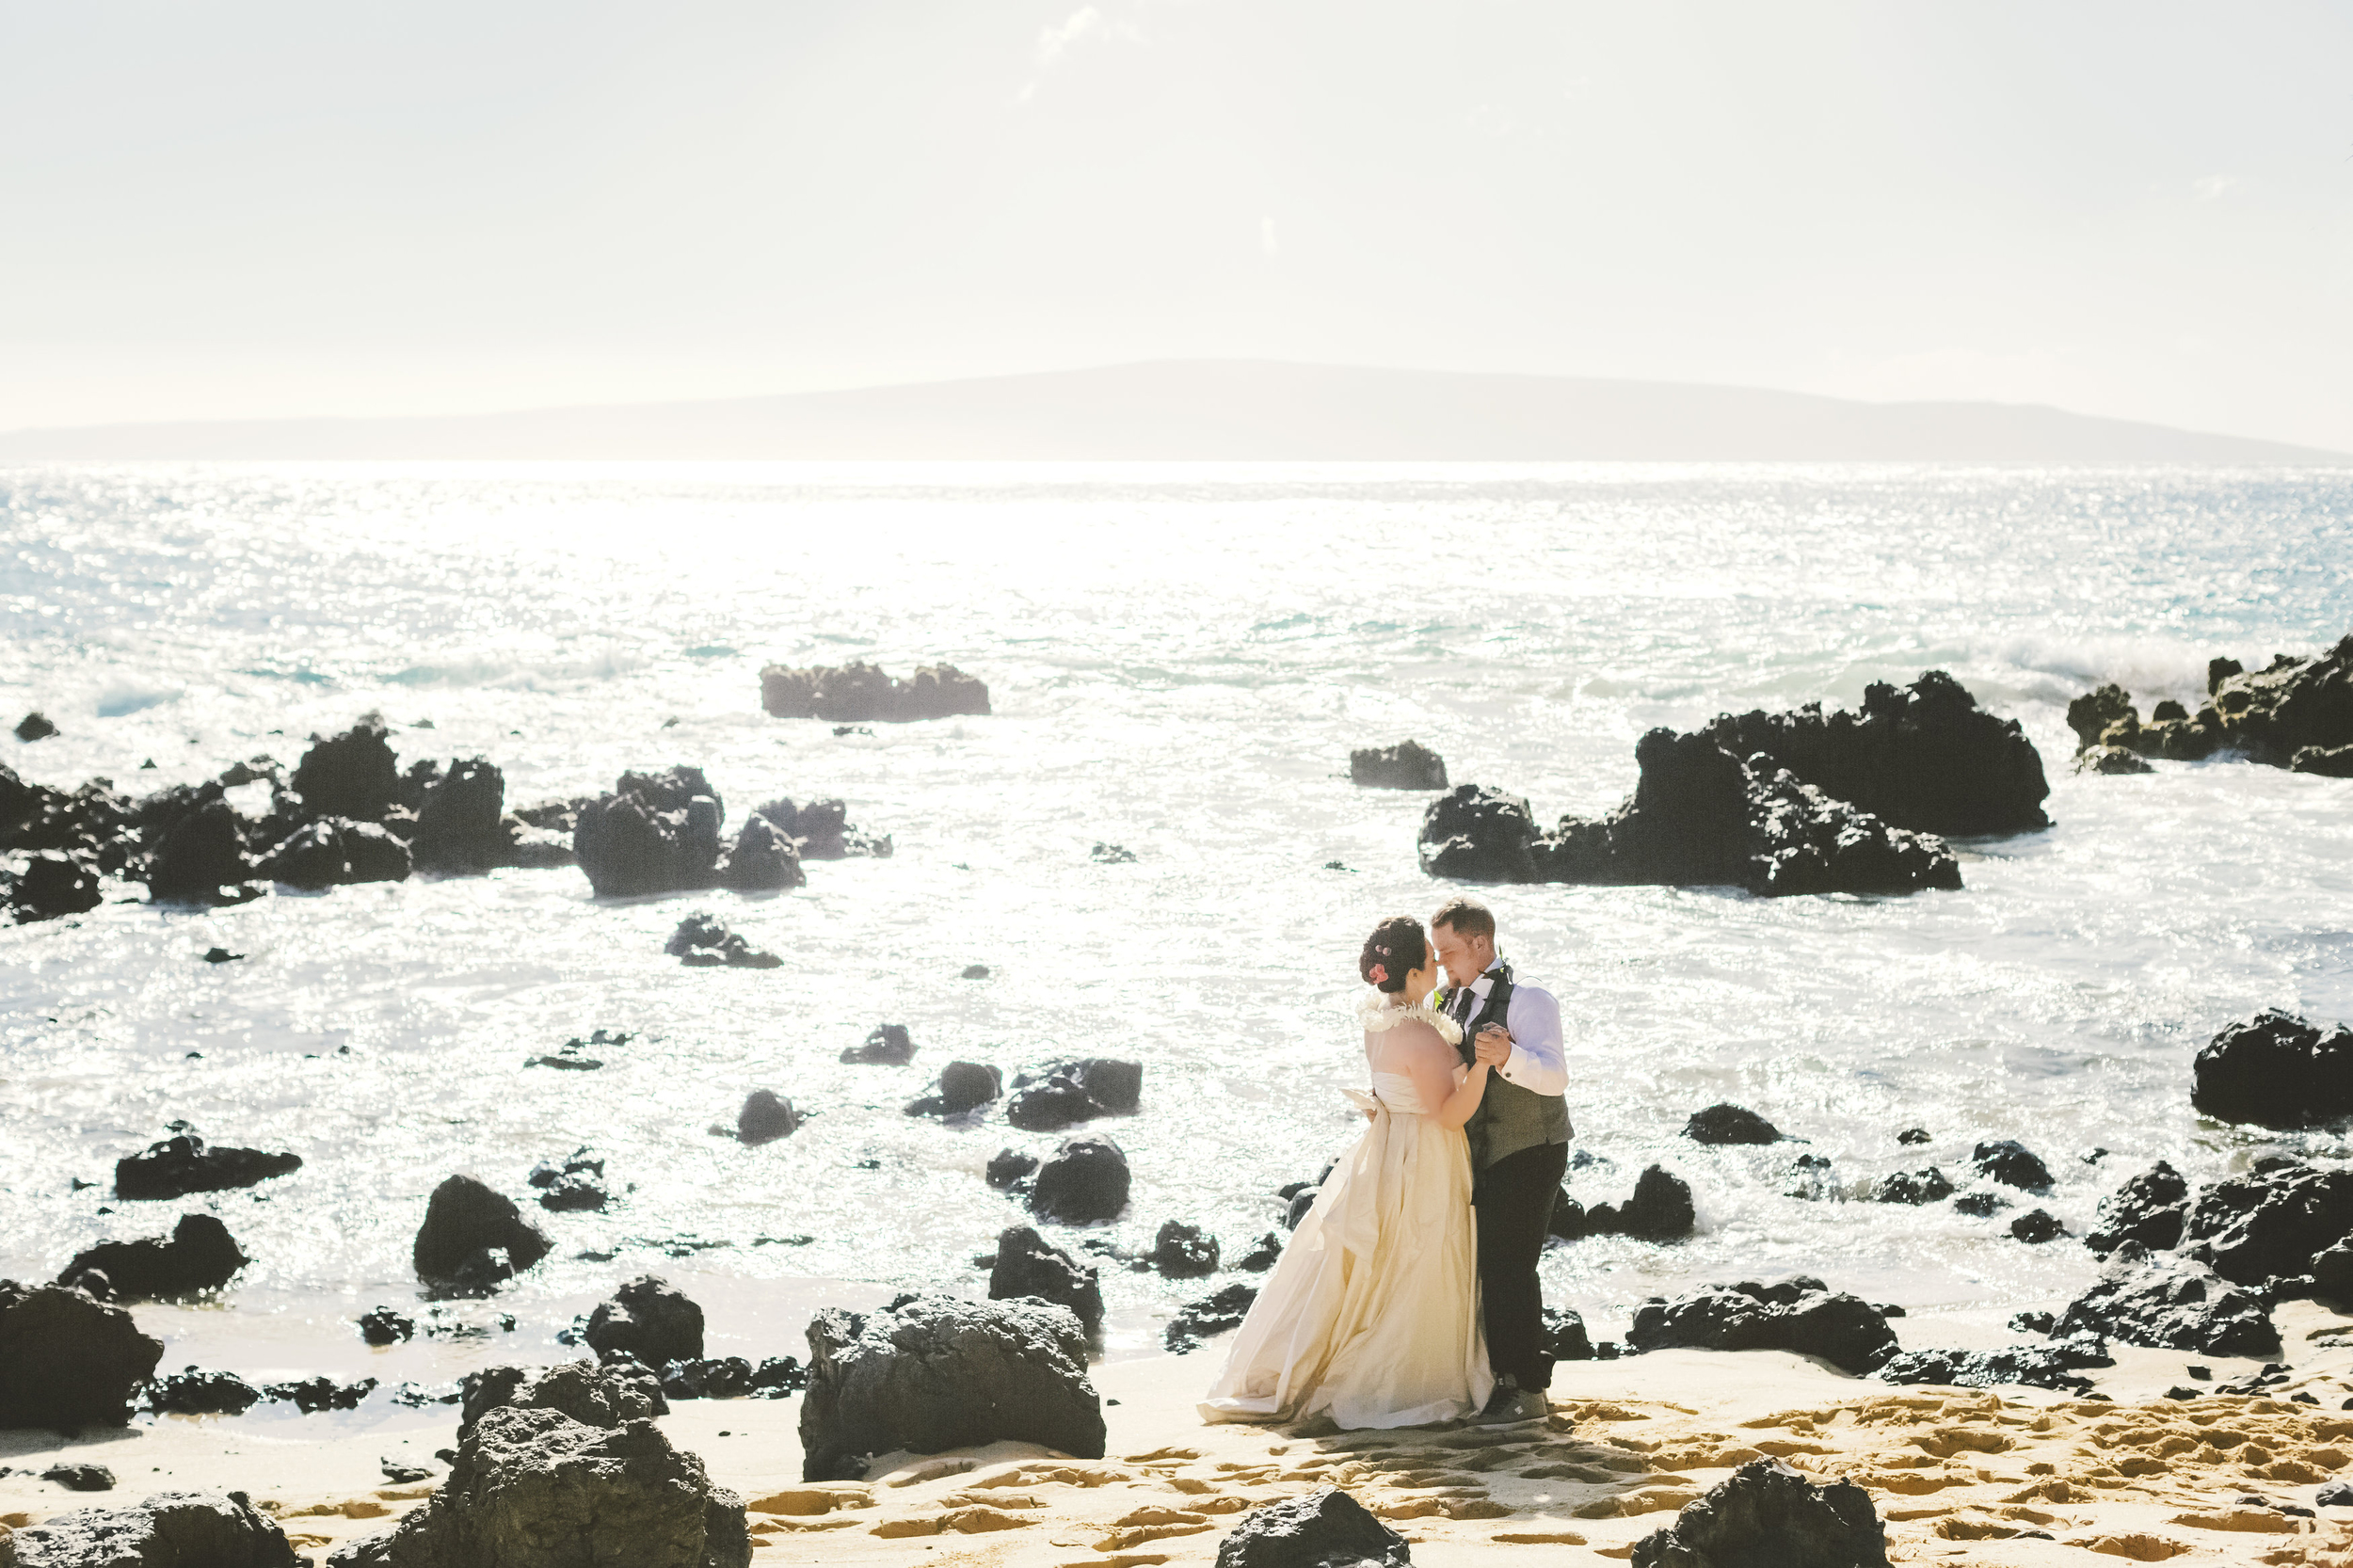 angie-diaz-photography-maui-elopement-37.jpg